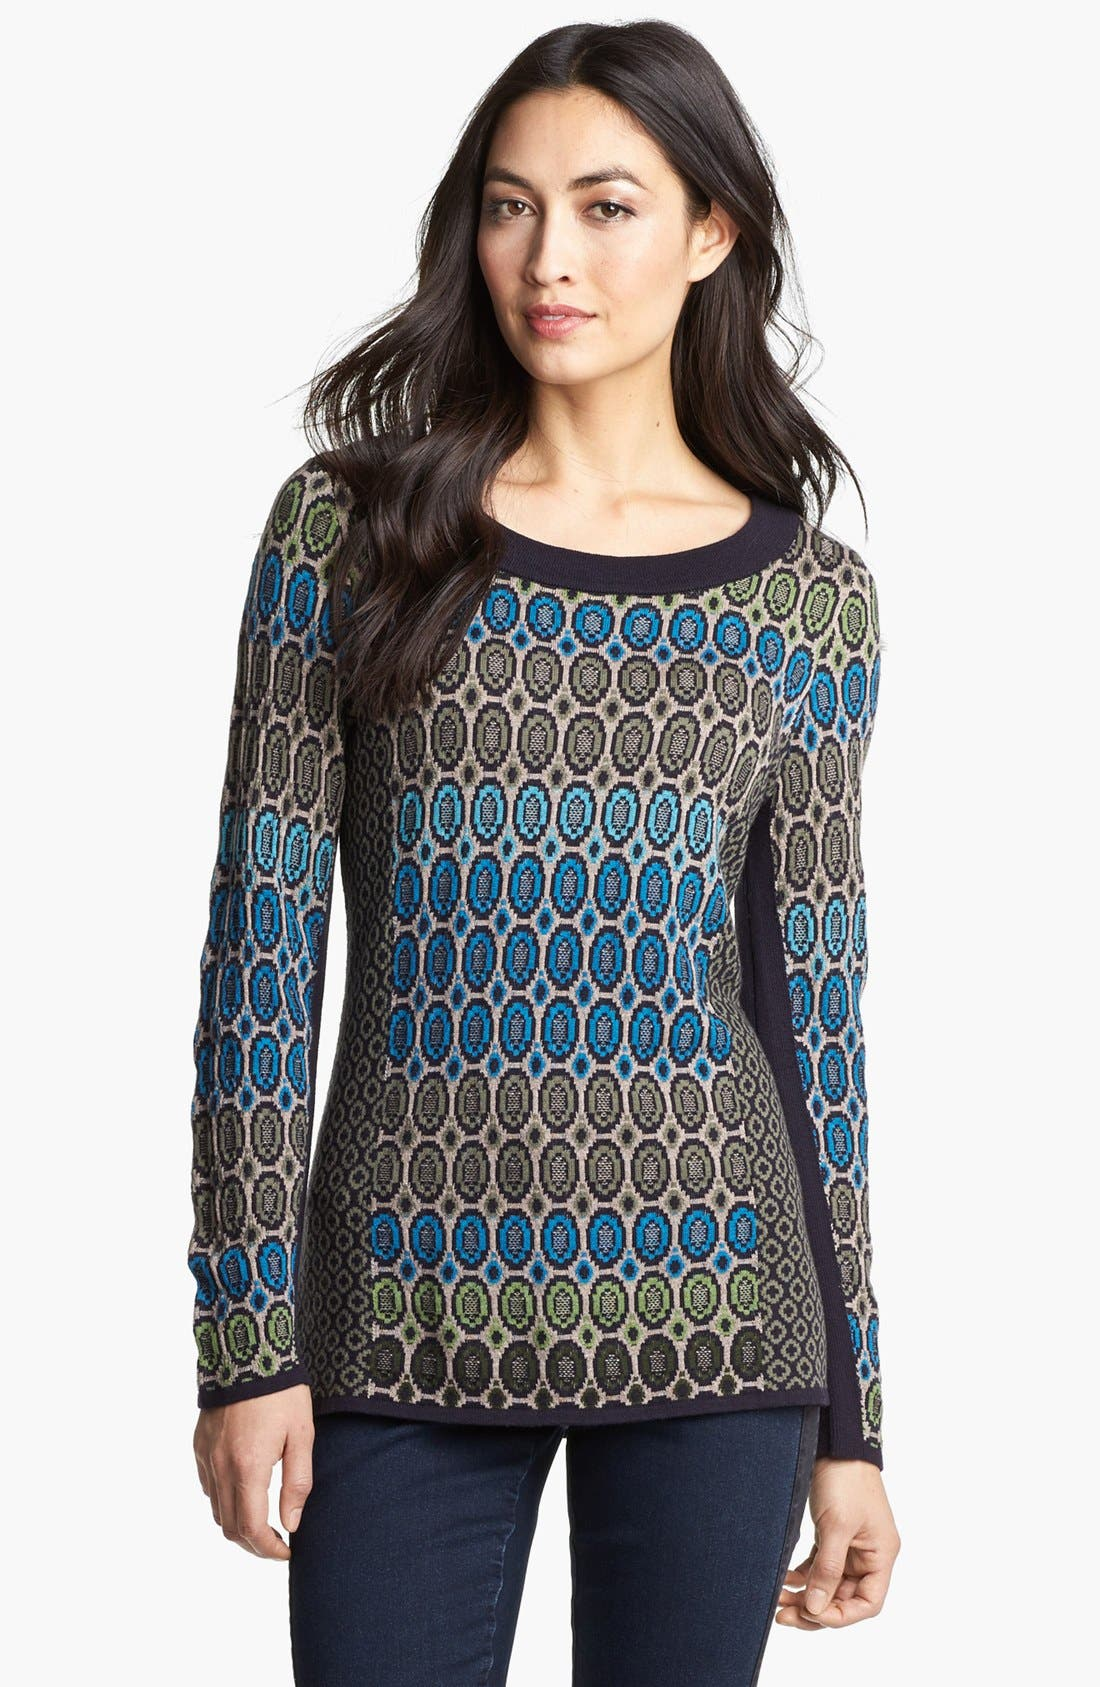 Nic + Zoe 'Geo Jacquard' Sweater,                         Main,                         color, Multi